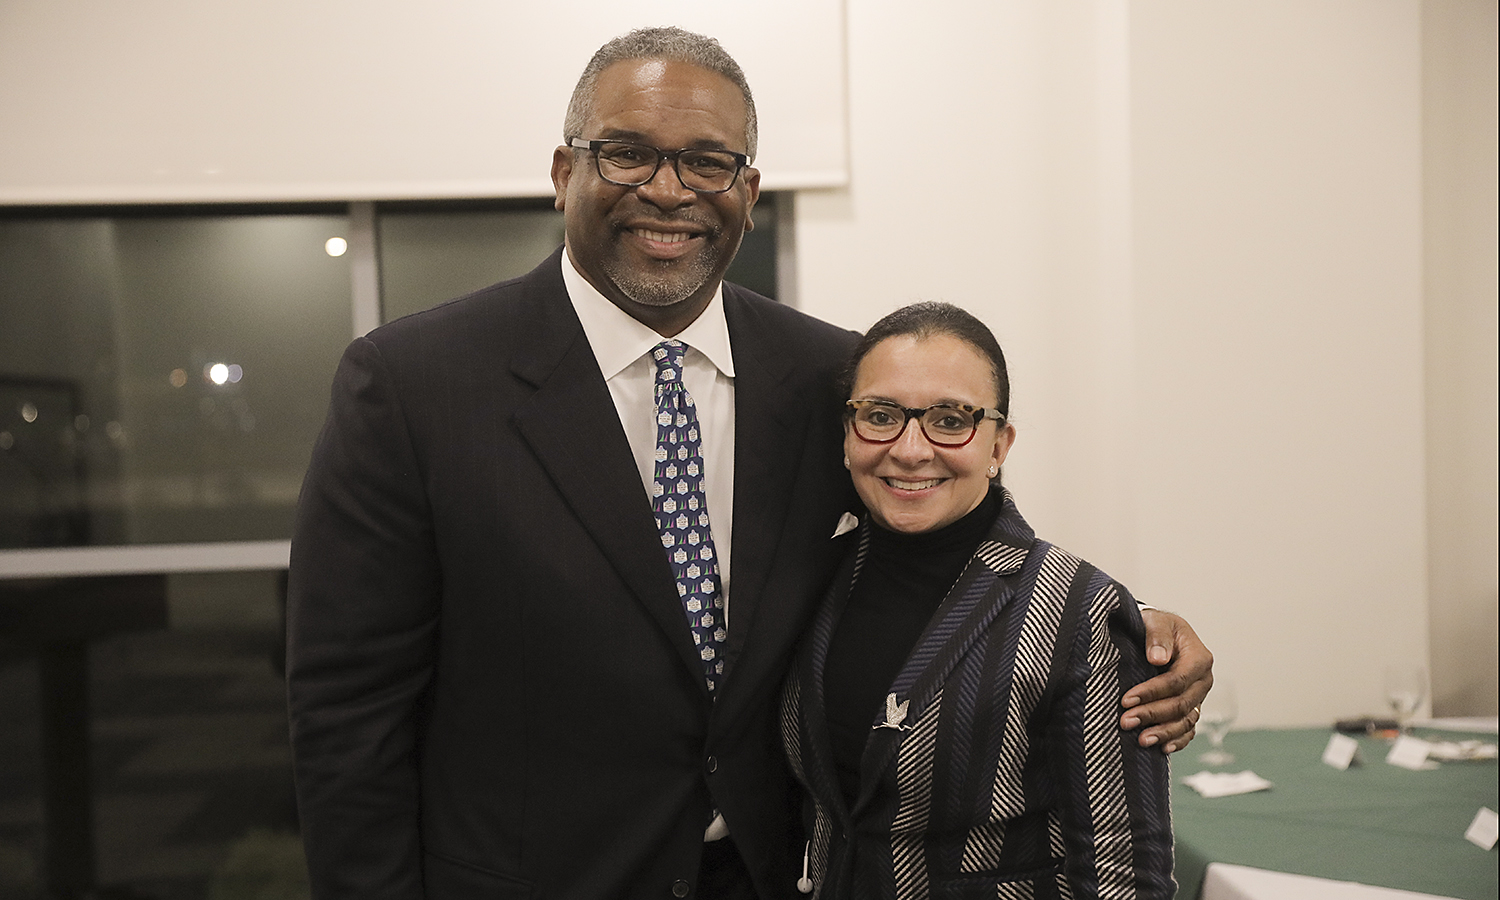 President Gregory J. Vincent '83 and Chrysa Chin '84 pose for a photo during the William Smith Founder's Day dinner. Chin received the William Smith Alumnae Association's highest honor, the Alumna Achievement Award.